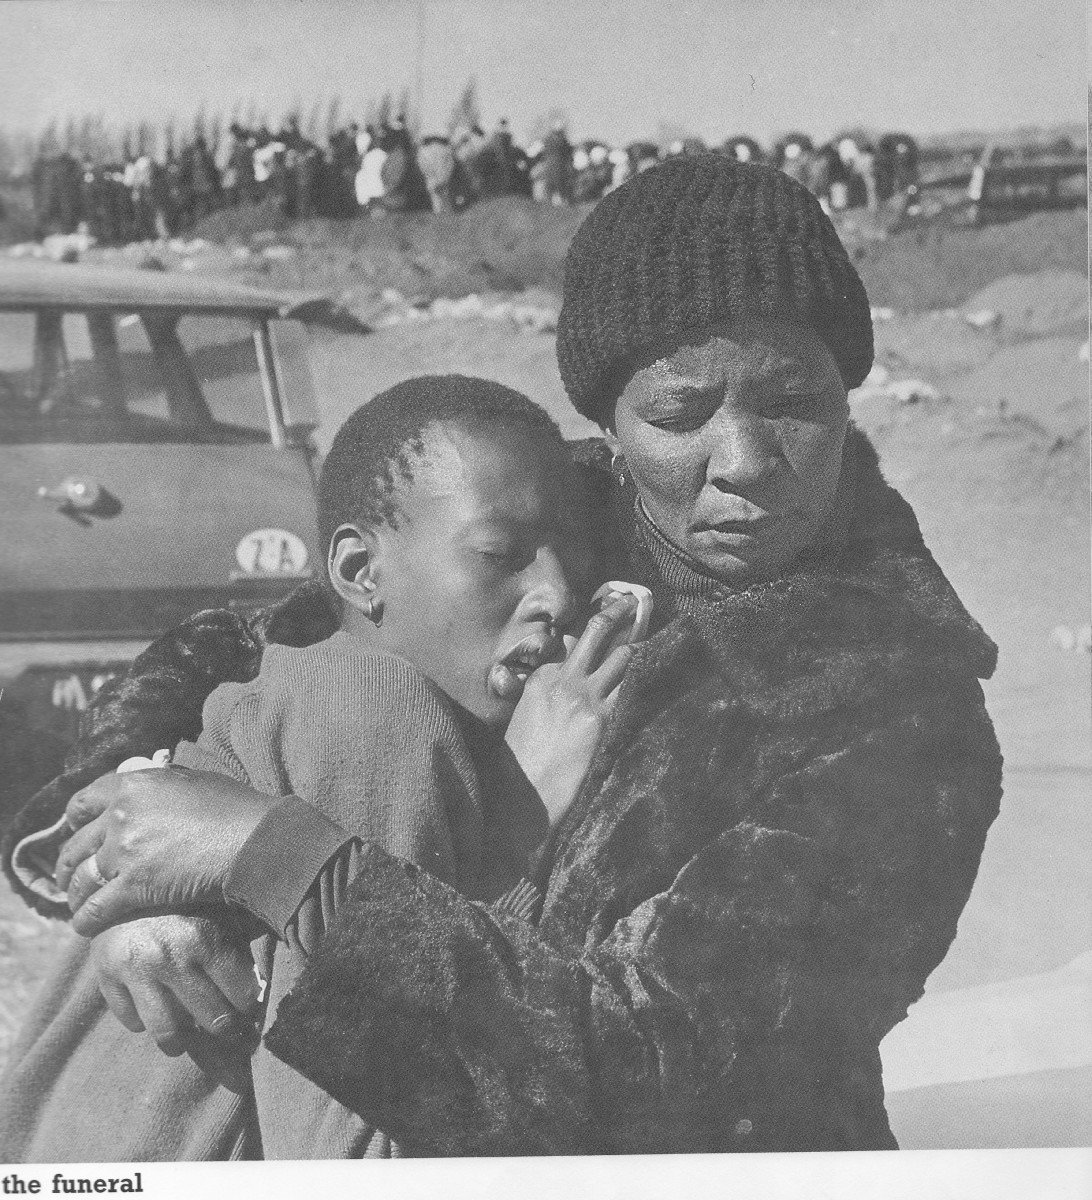 Funerals have become a way of life in South Afirca. It was worse when the Boers were killing  students and workers in 1976; today it more people are being buried due to AIDS, Sugar diabetes, high blood pressure, TV, Alcoholism and malnutrition induce